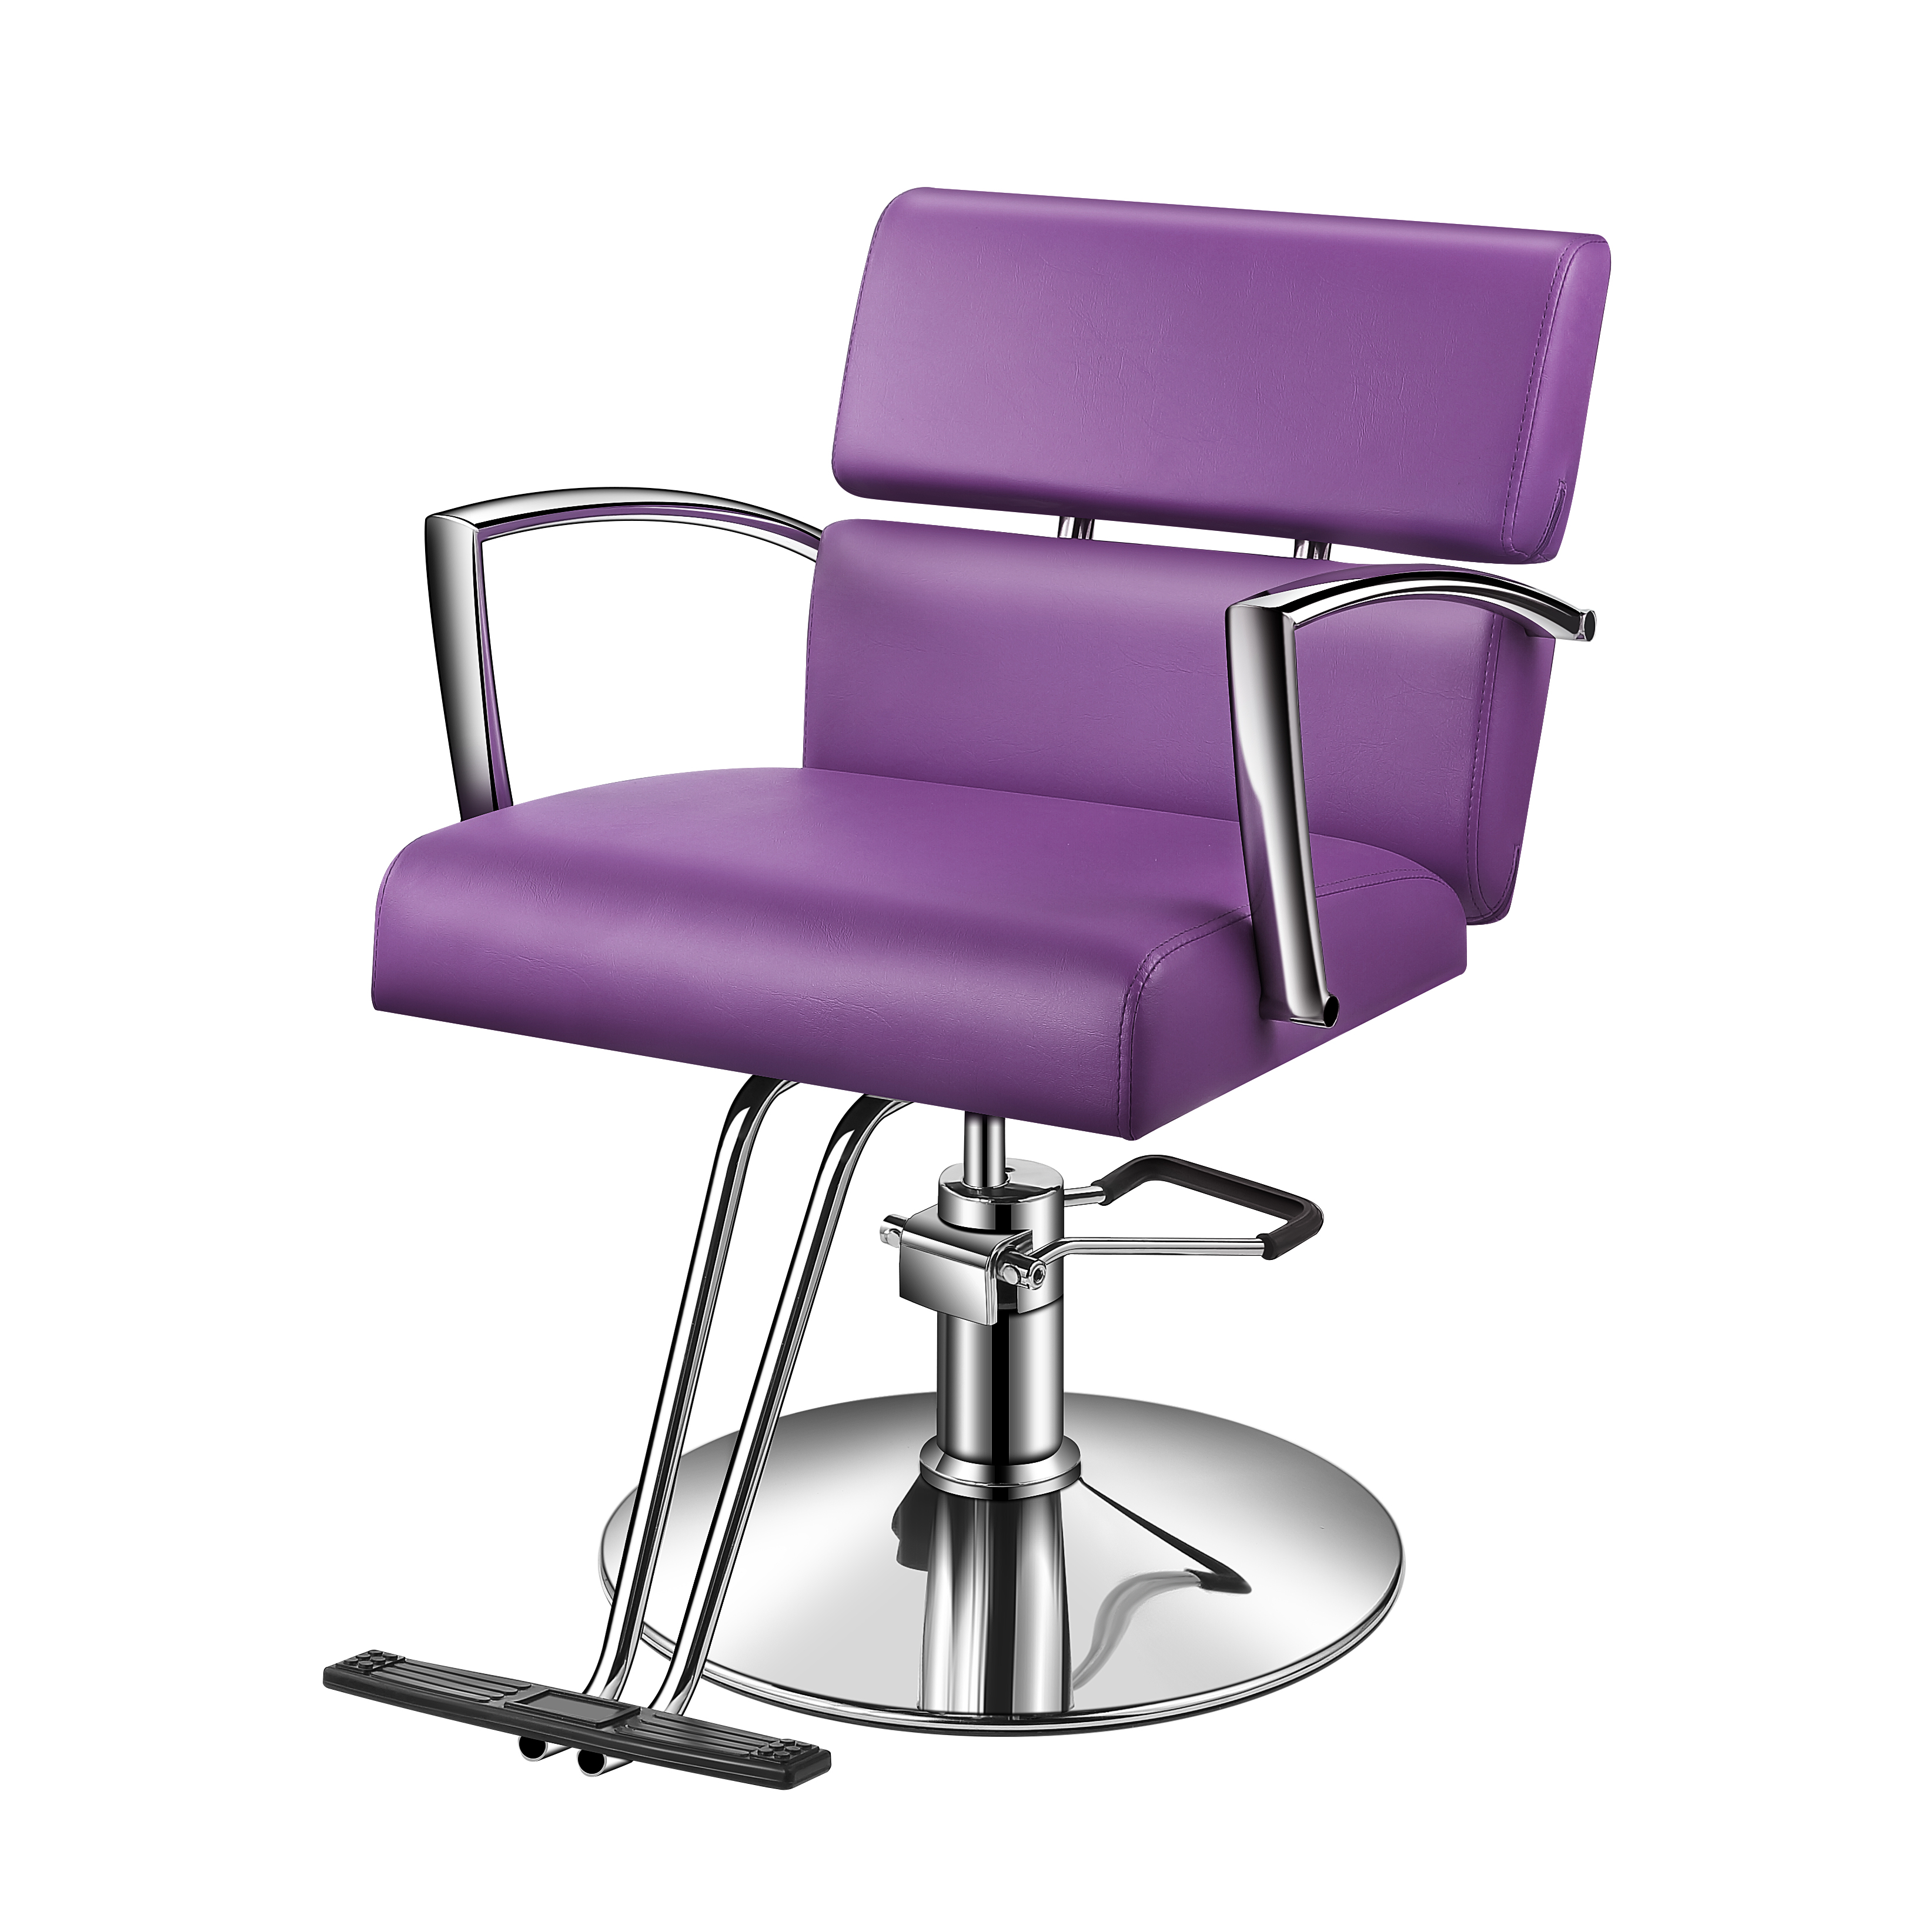 Baasha Modern Purple Salon Chairs For Hair Stylist With Hydraulic Pump Easy To Assemble Salon  sc 1 st  Walmart & Baasha Modern Purple Salon Chairs For Hair Stylist With Hydraulic ...